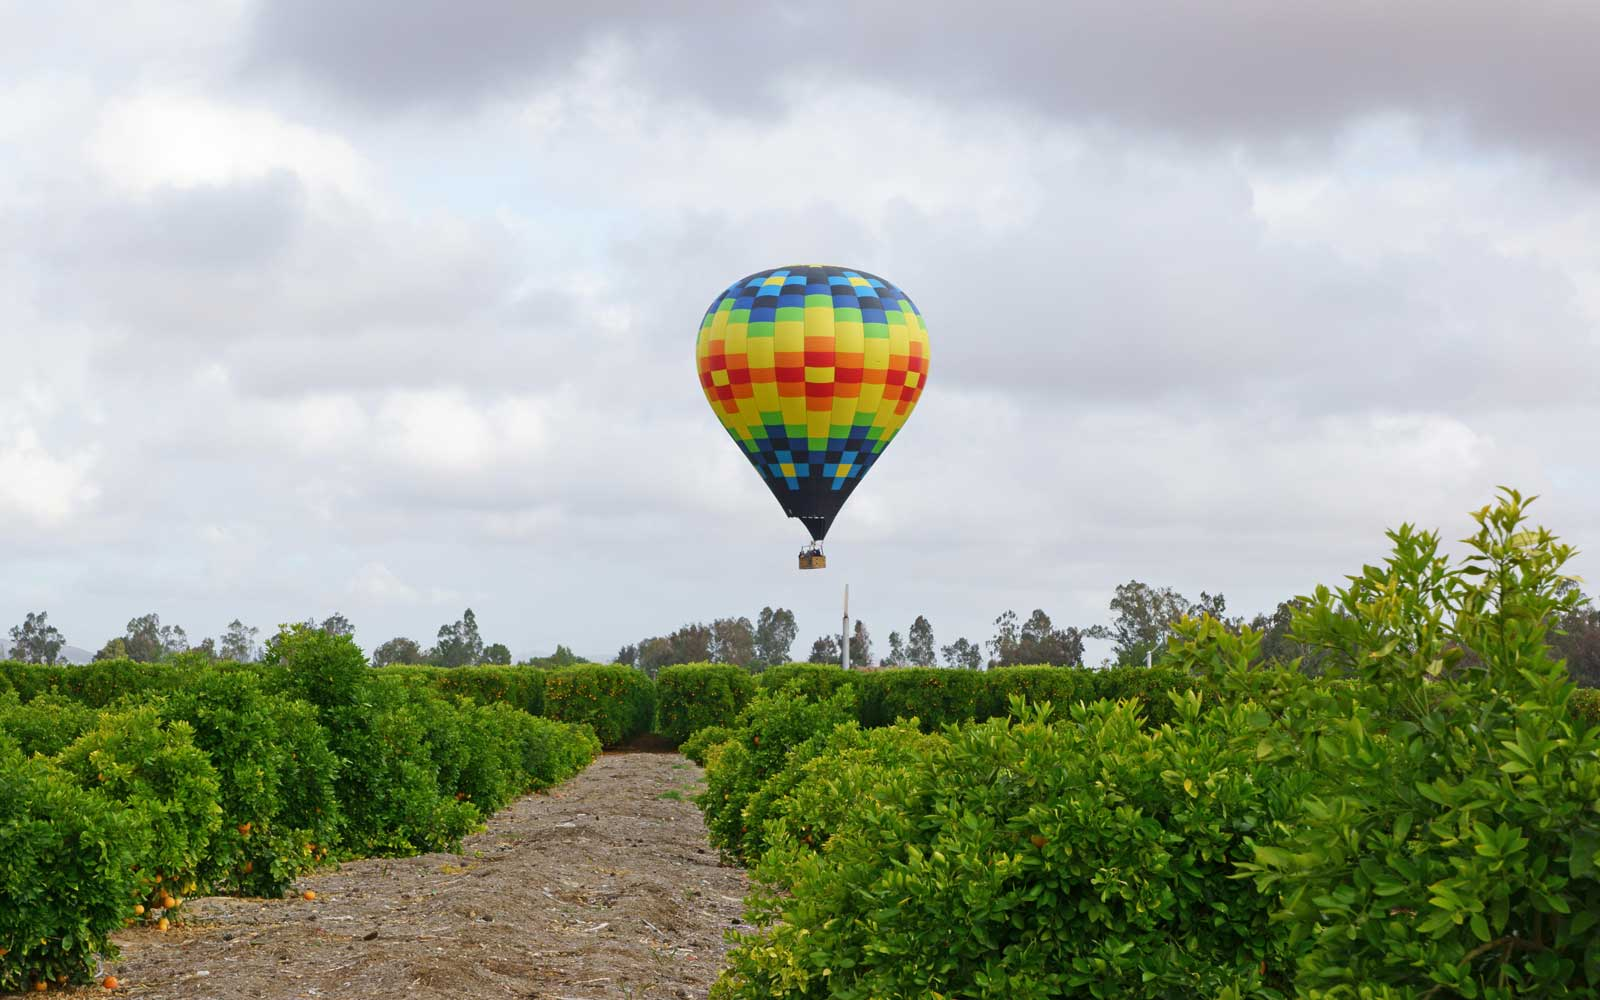 Temecula Valley winery and orchards in Southern California during Balloon and Wine Festival